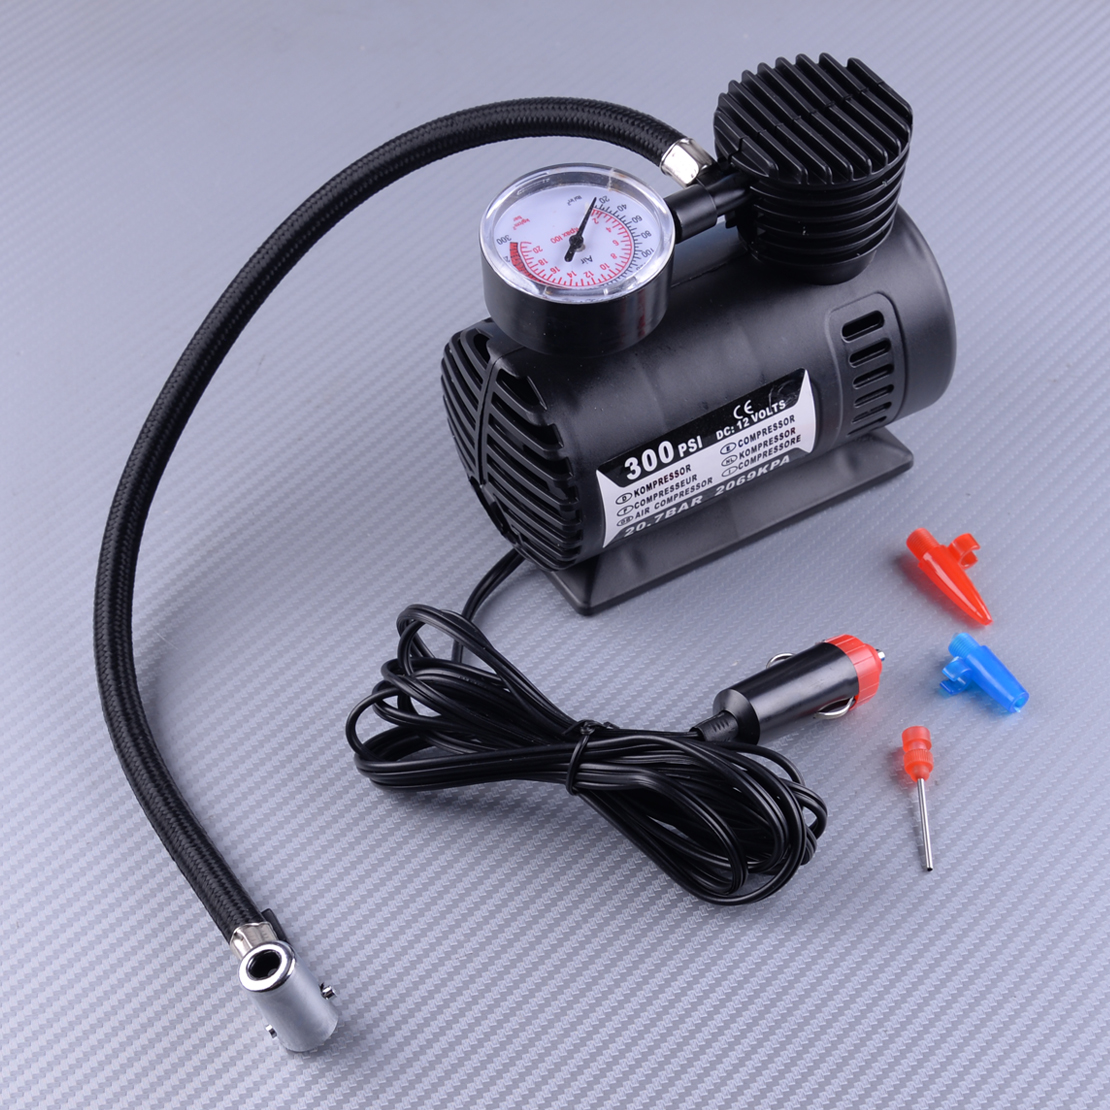 LETAOSK 1Pcs 300PSI 12V Portable Mini Air Compressor Auto Car Electric Tire Air Inflator Pump Tool Black